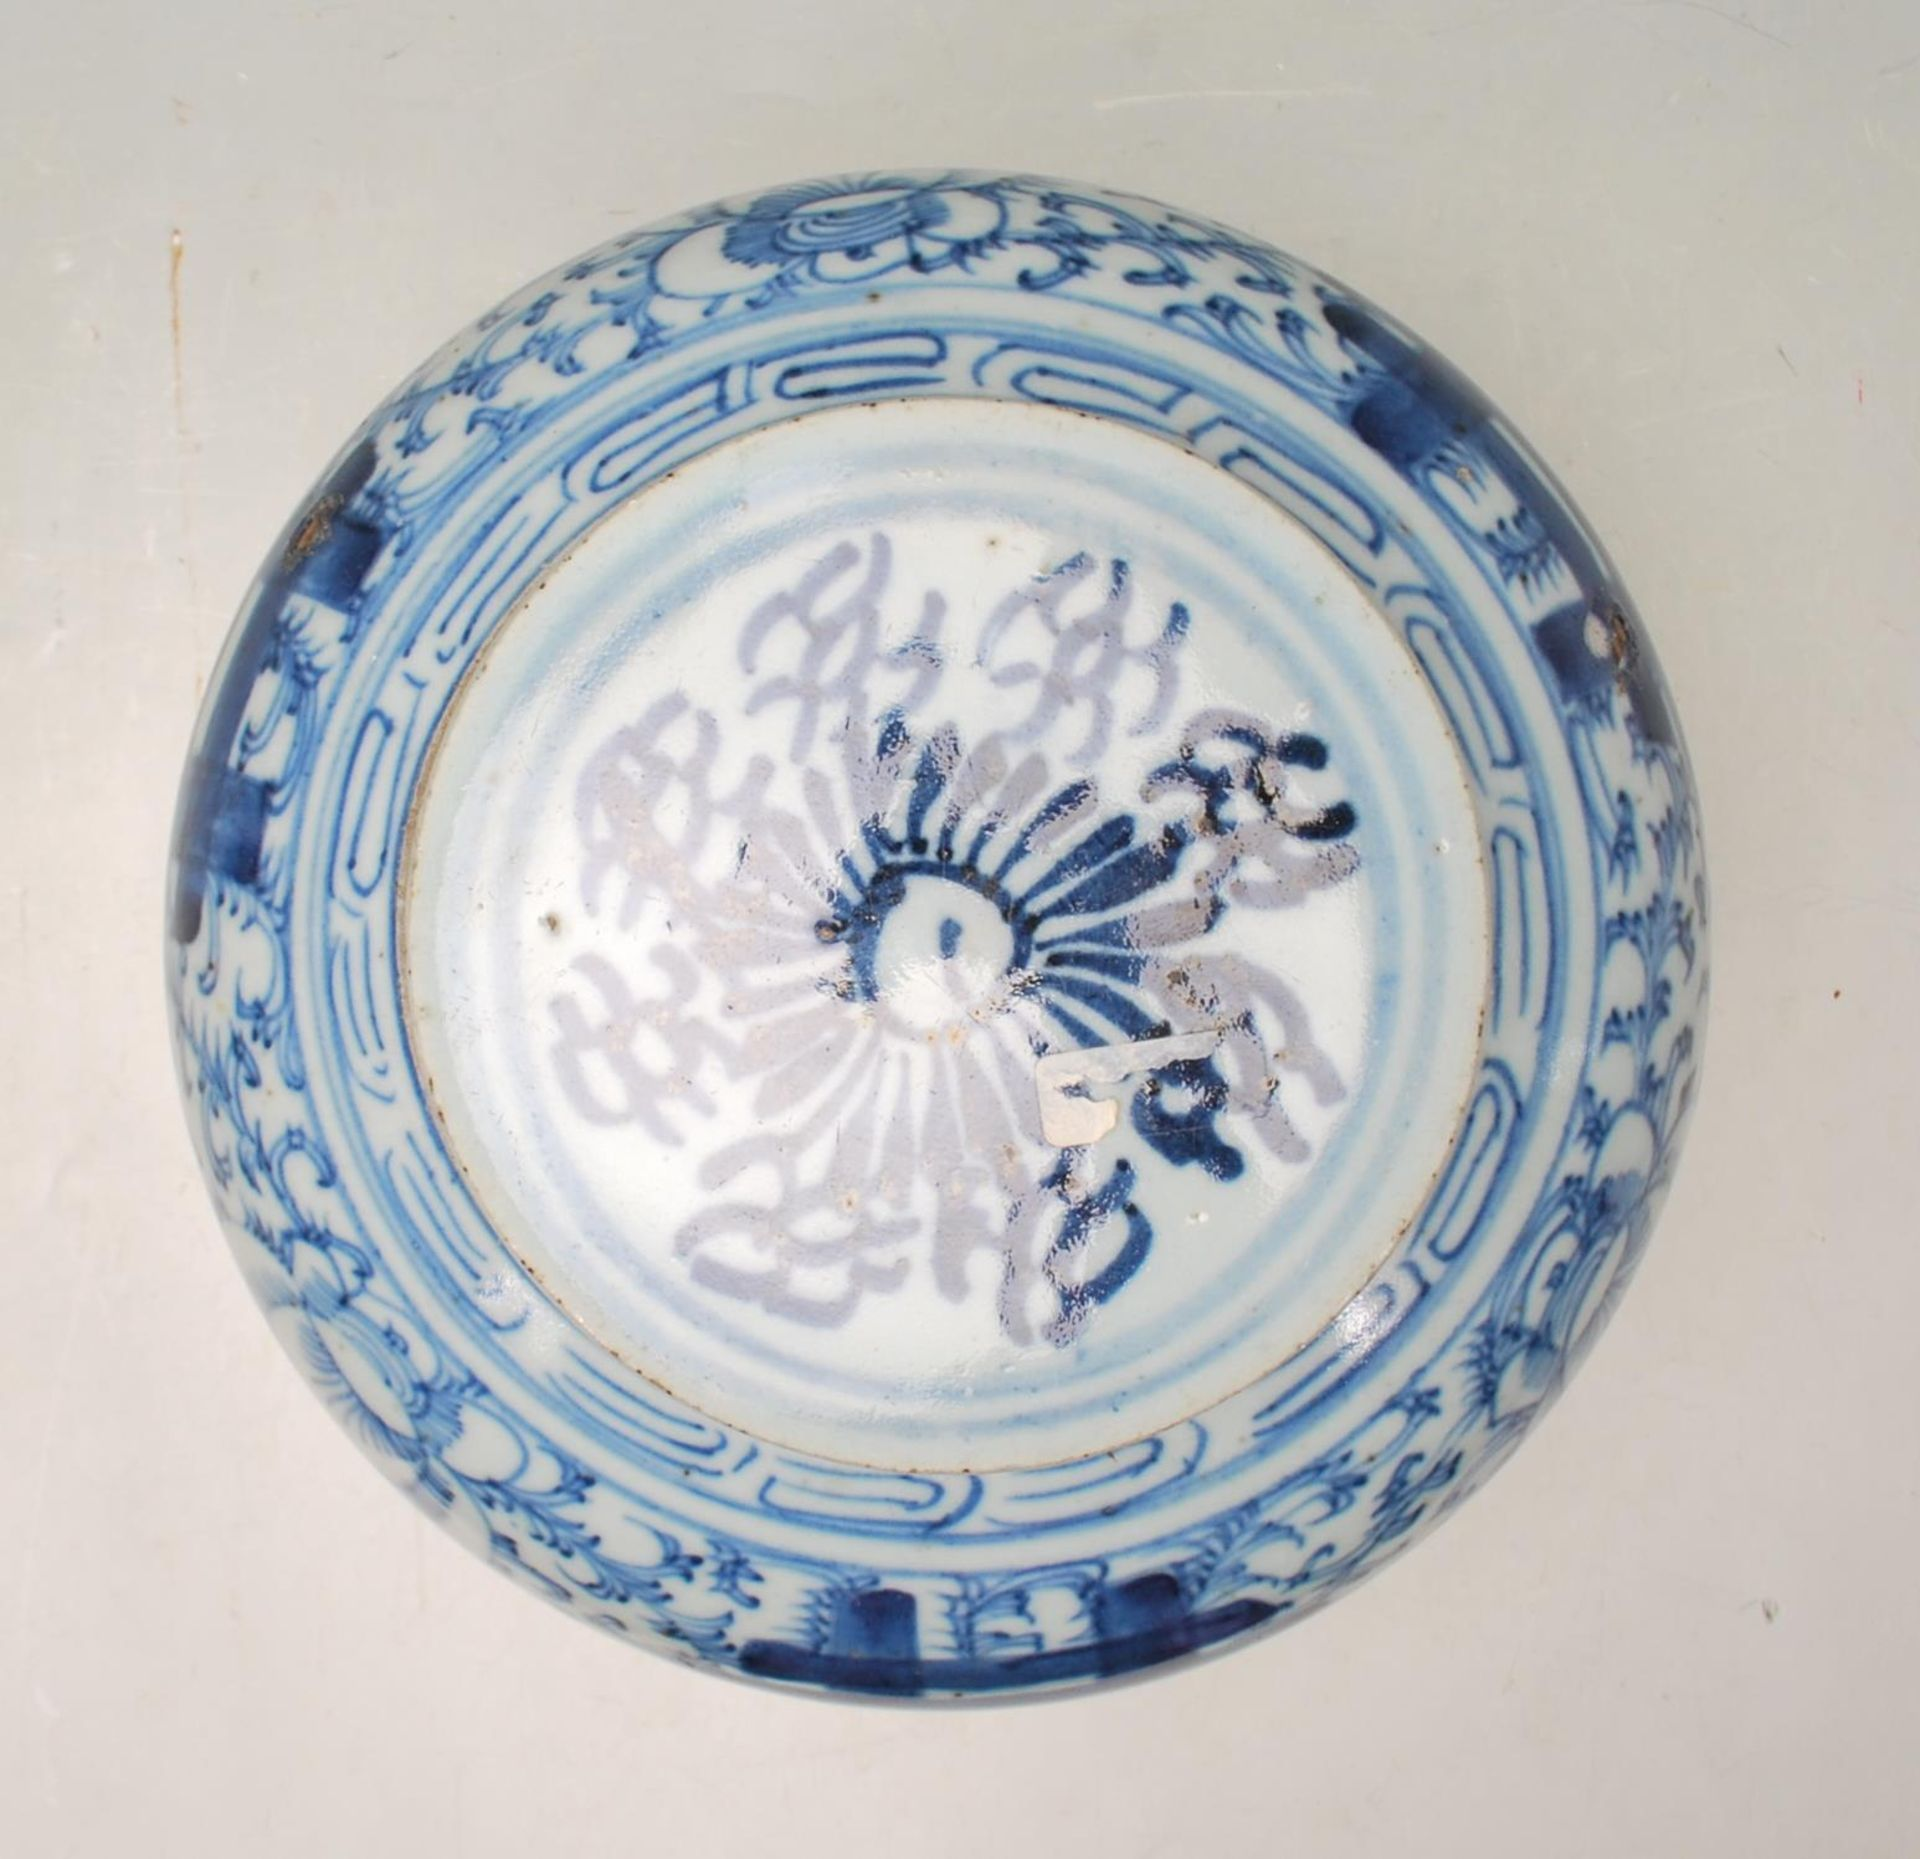 LATE 19TH CENTURY KANGXI CHINESE BLUE AND WHITE VASE - Image 2 of 9